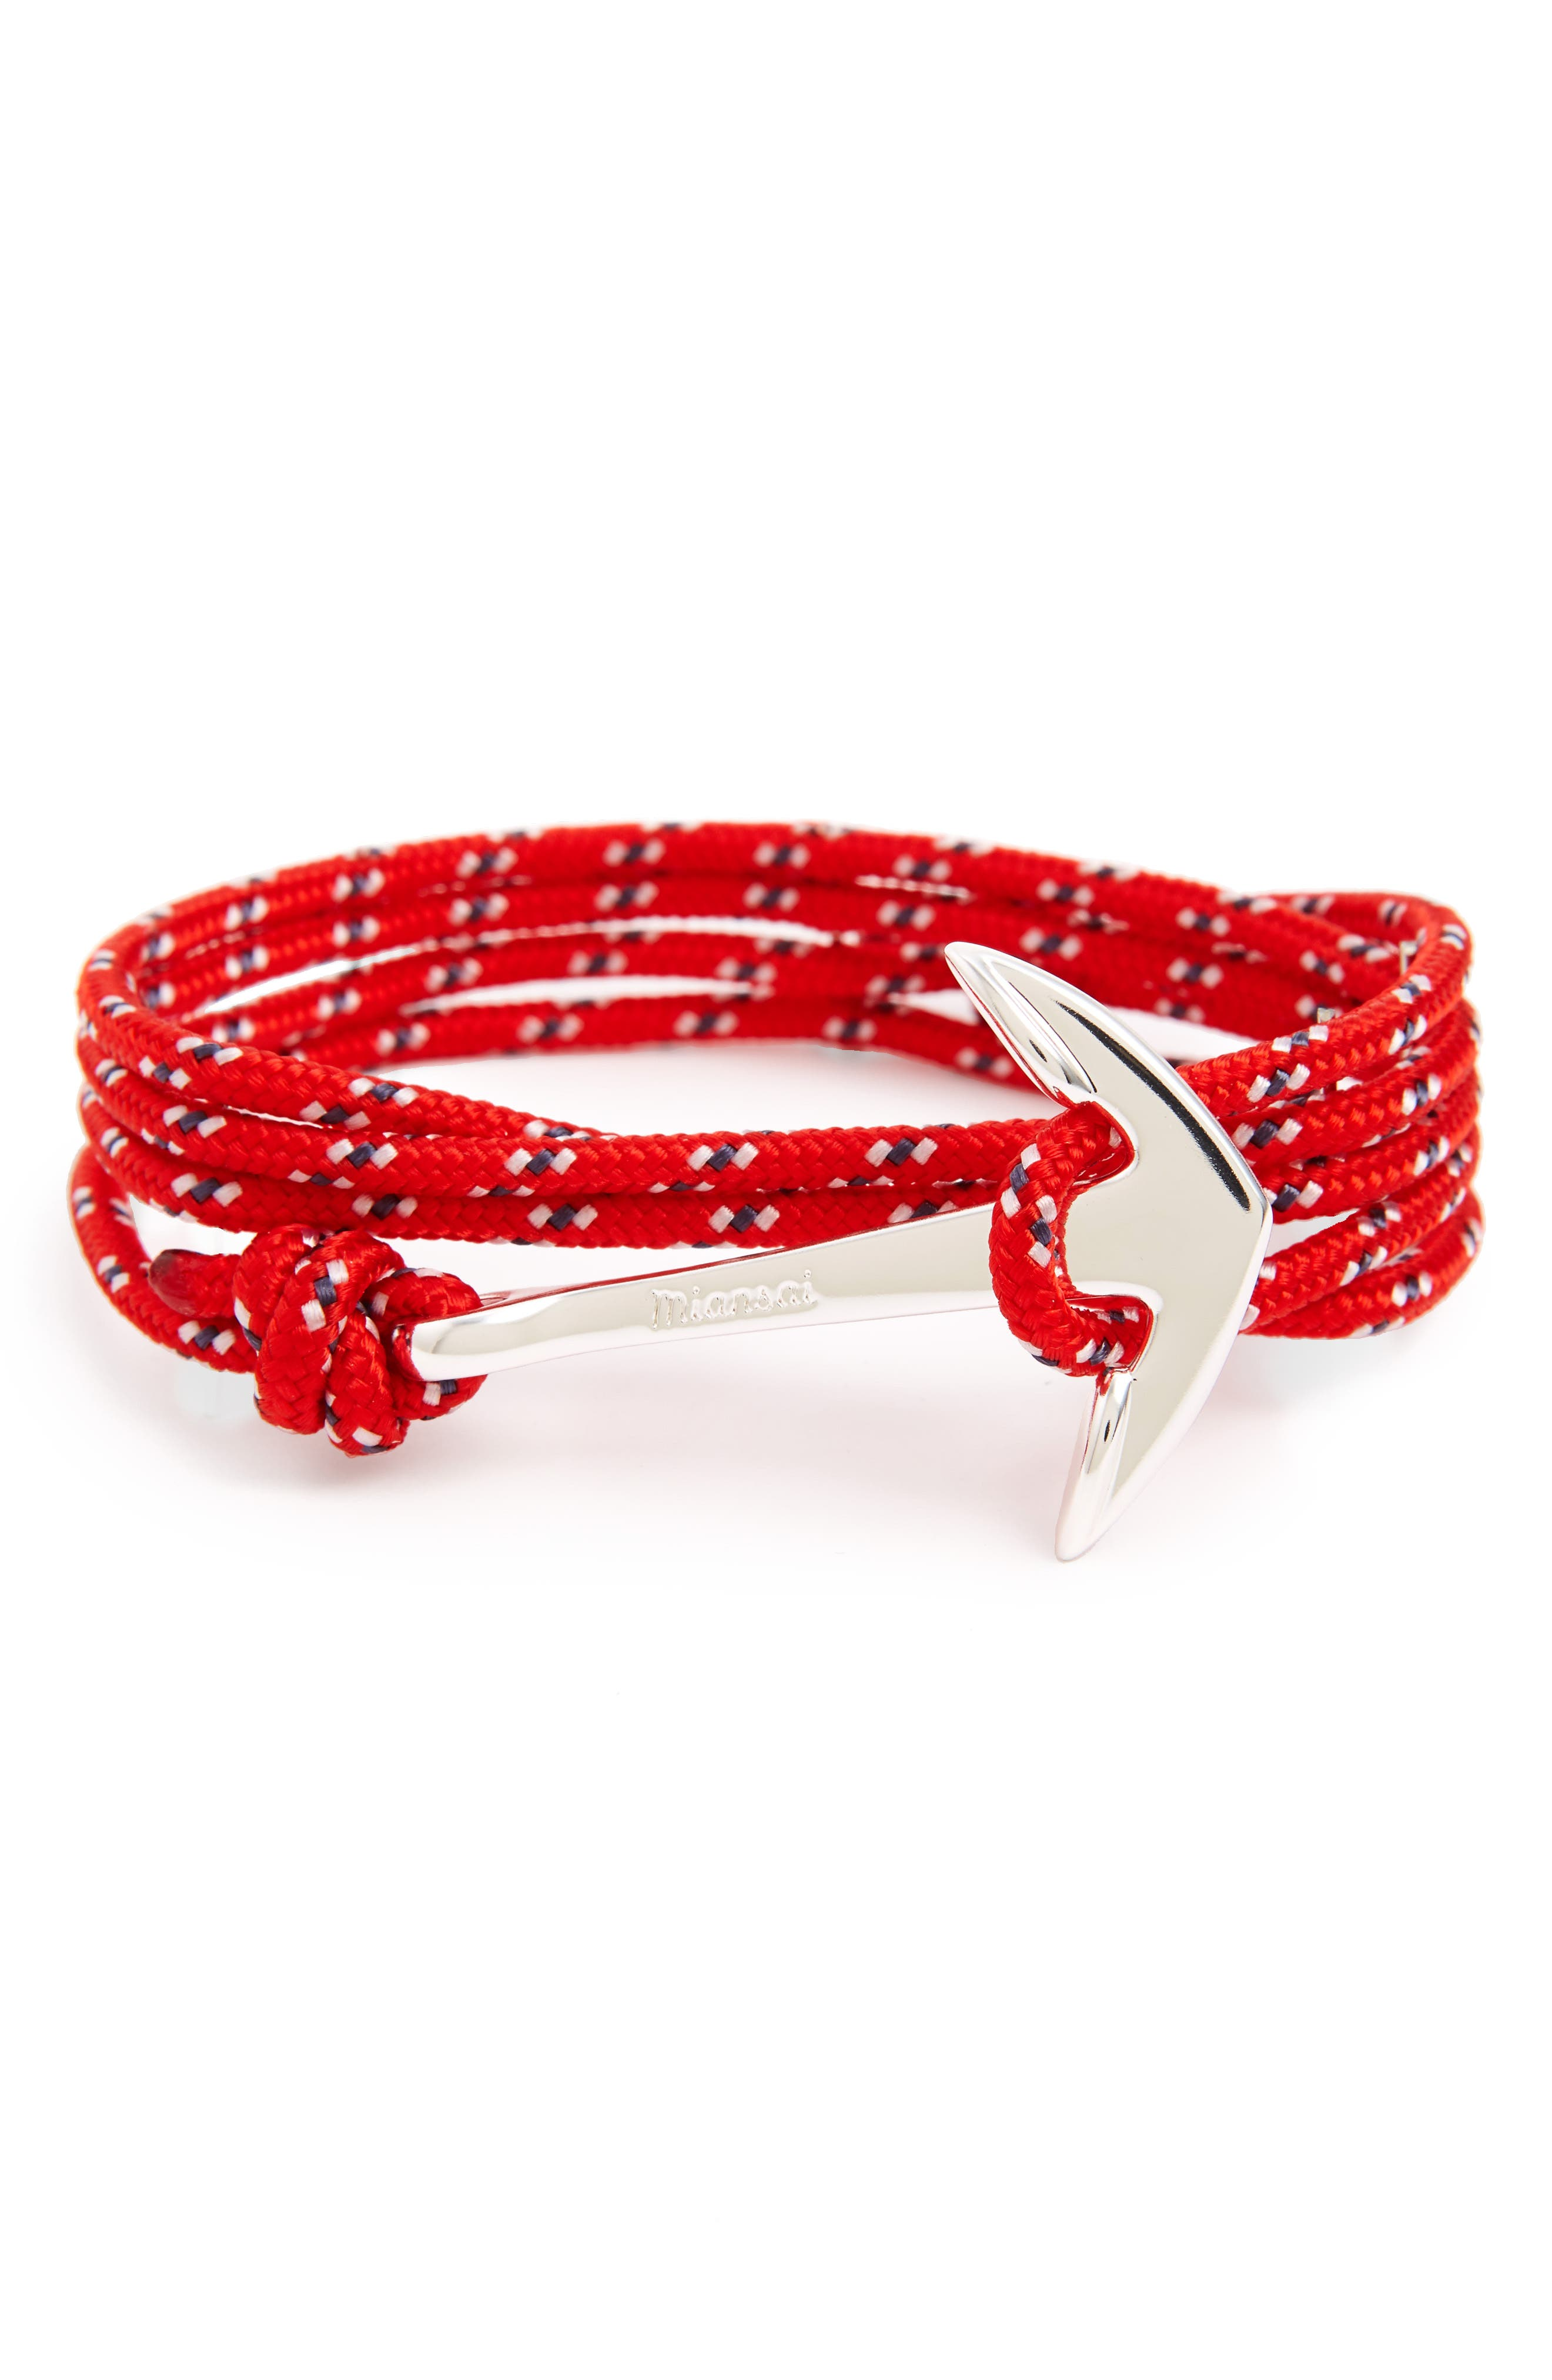 Silver Anchor Rope Wrap Bracelet,                         Main,                         color, Crimson